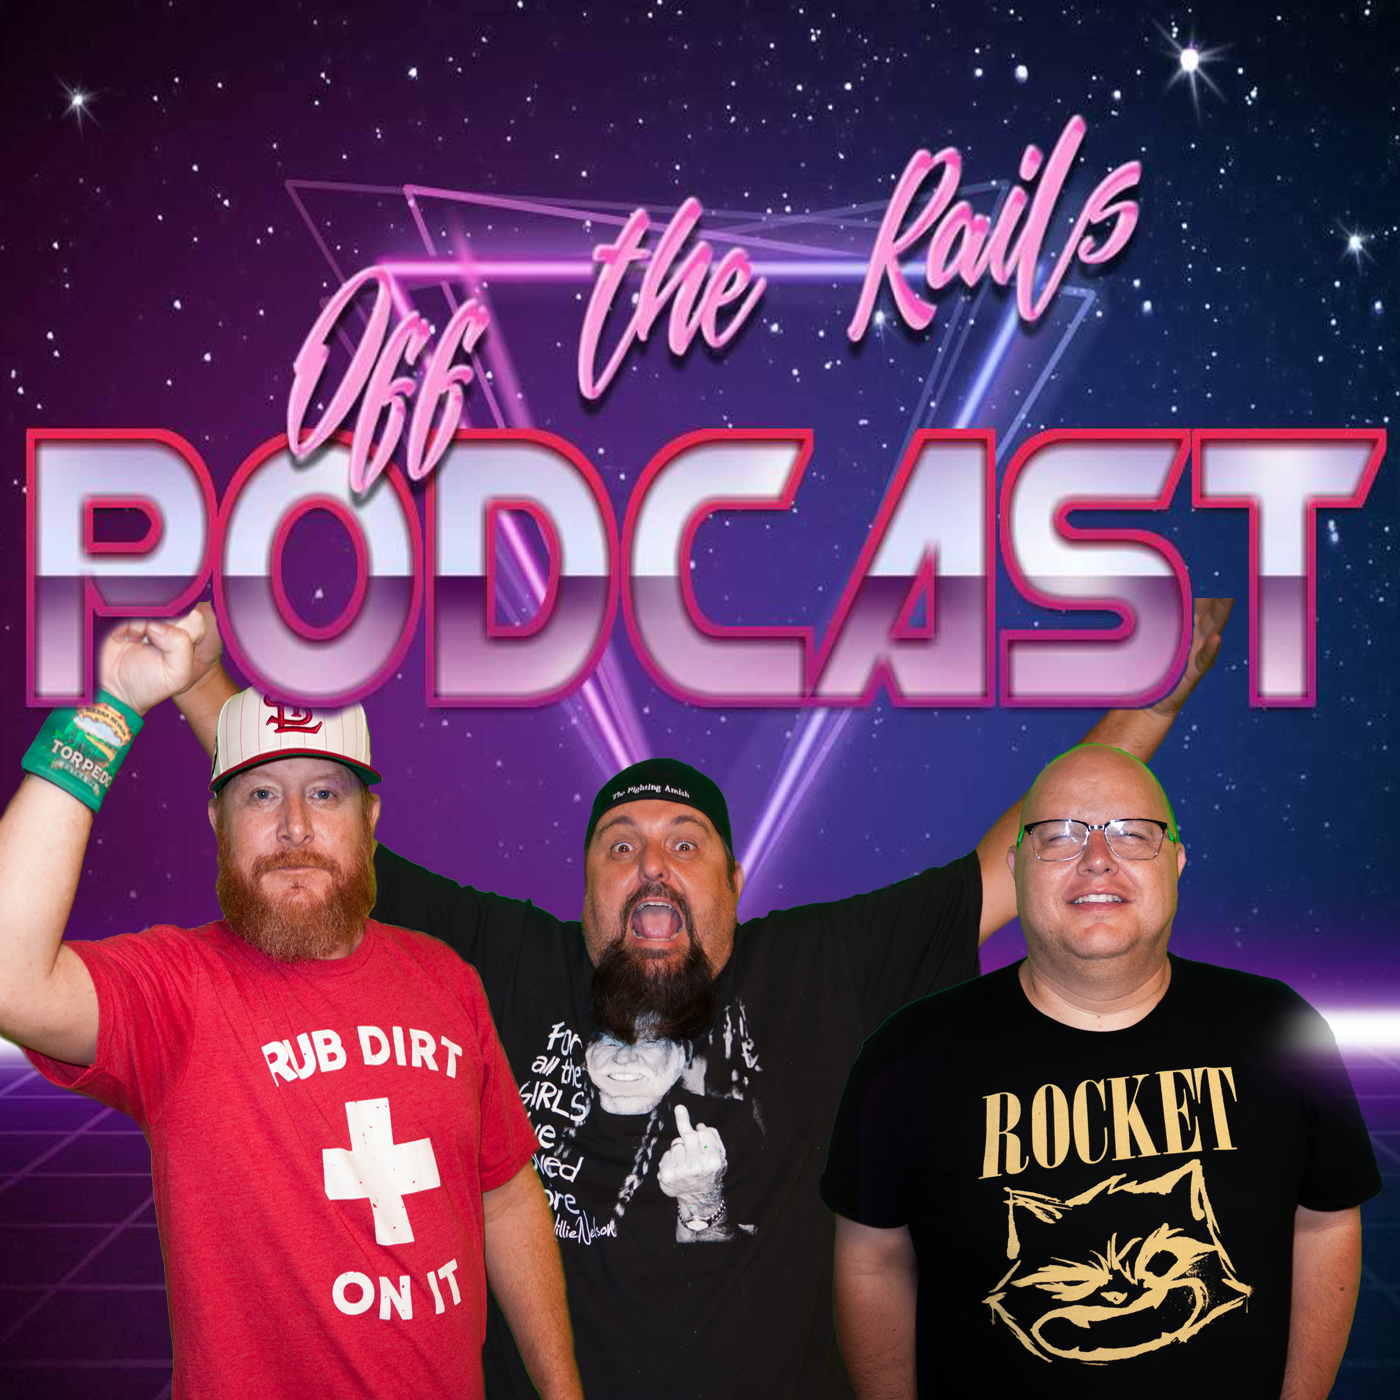 Off The Rails Podcast: or (The Unexpected Humor in Pop Culture) logo